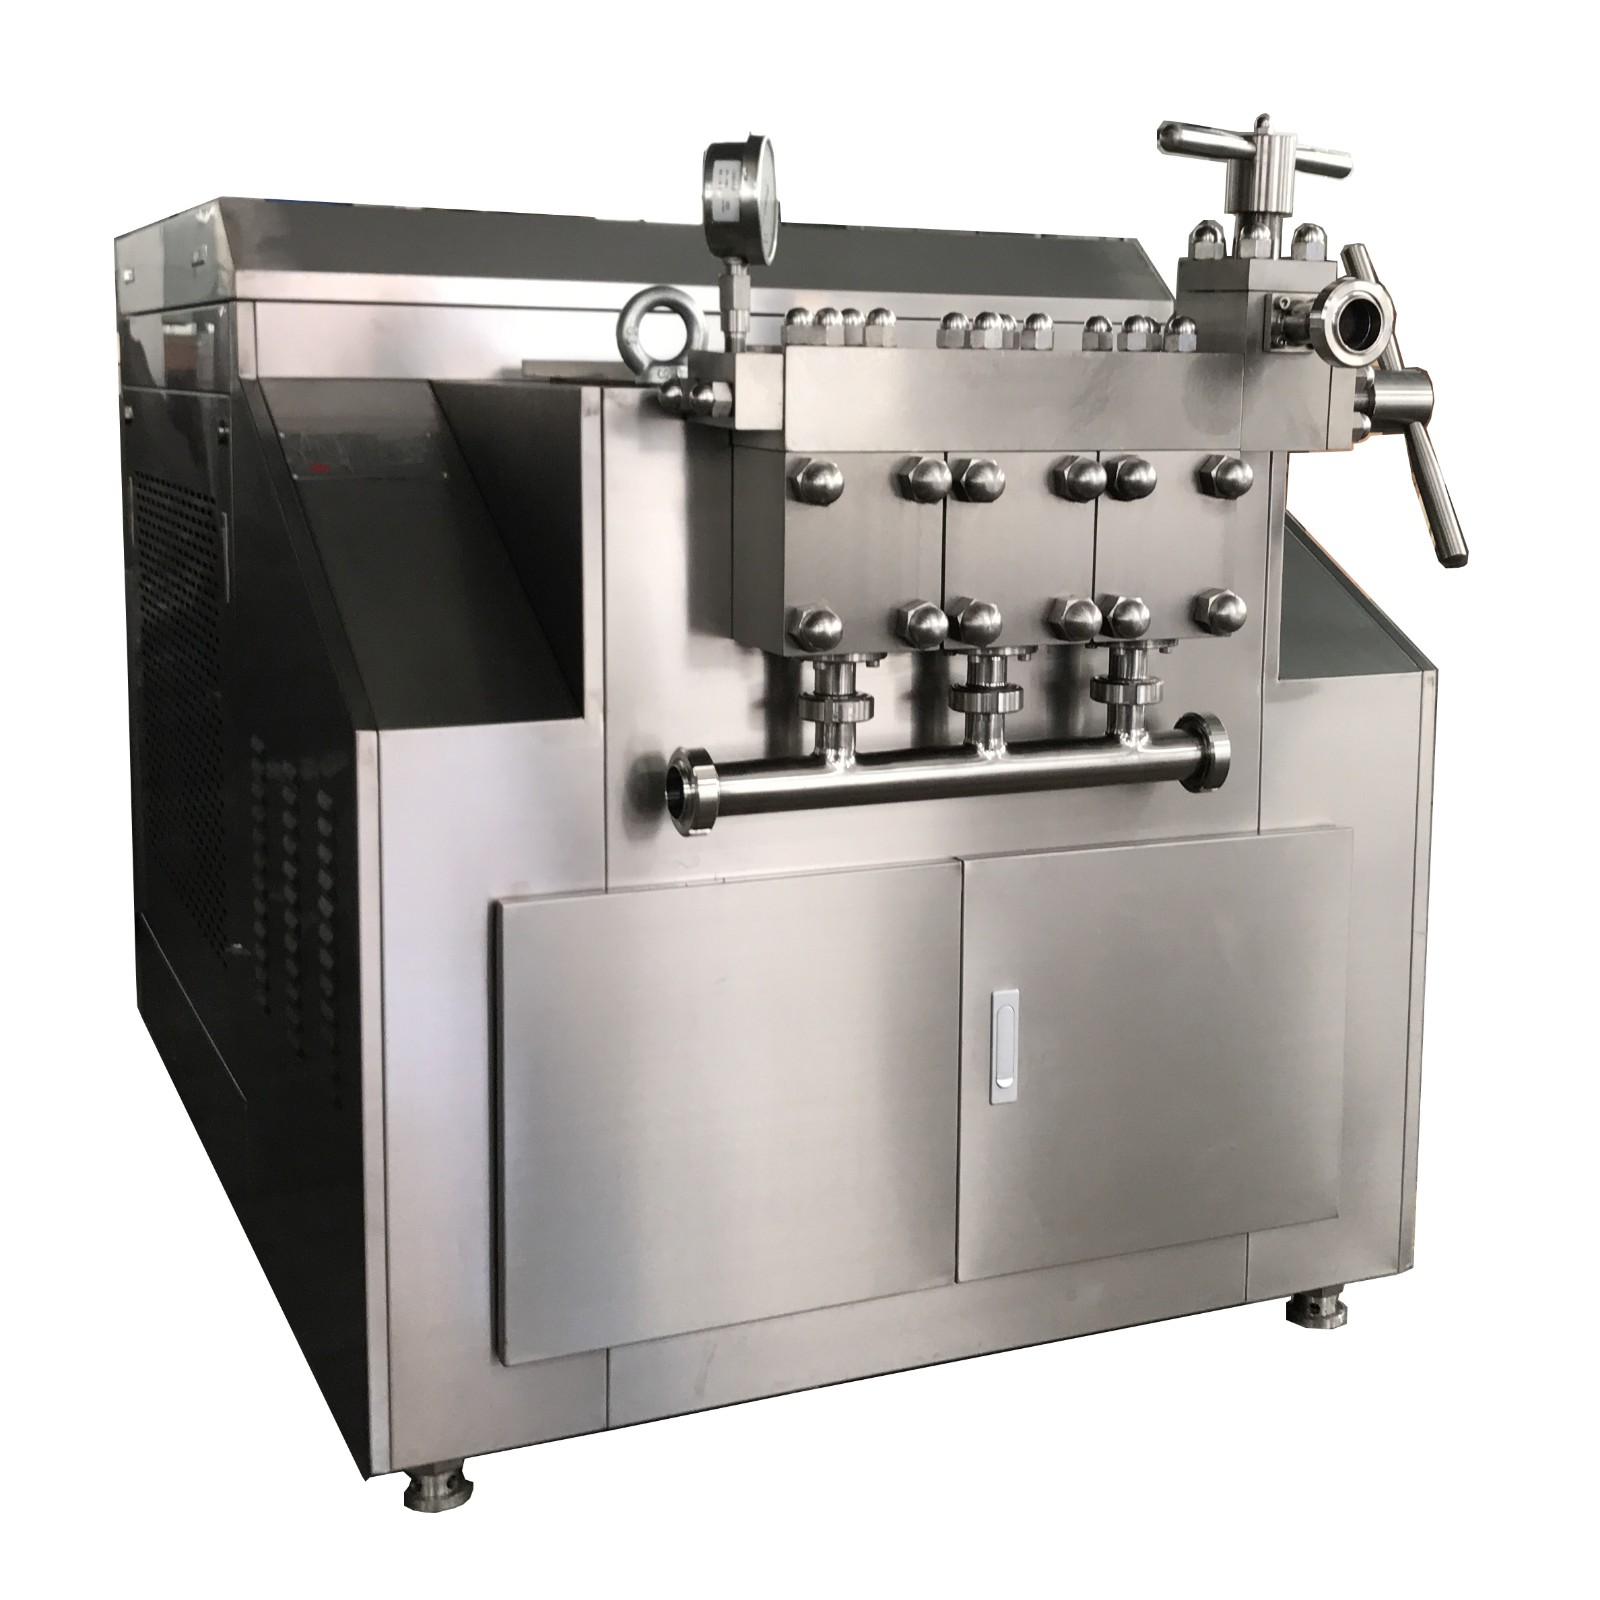 JD WATER-Jndwater High Speed Drink Production Homegenizer Machine-jd Water Beverage-3